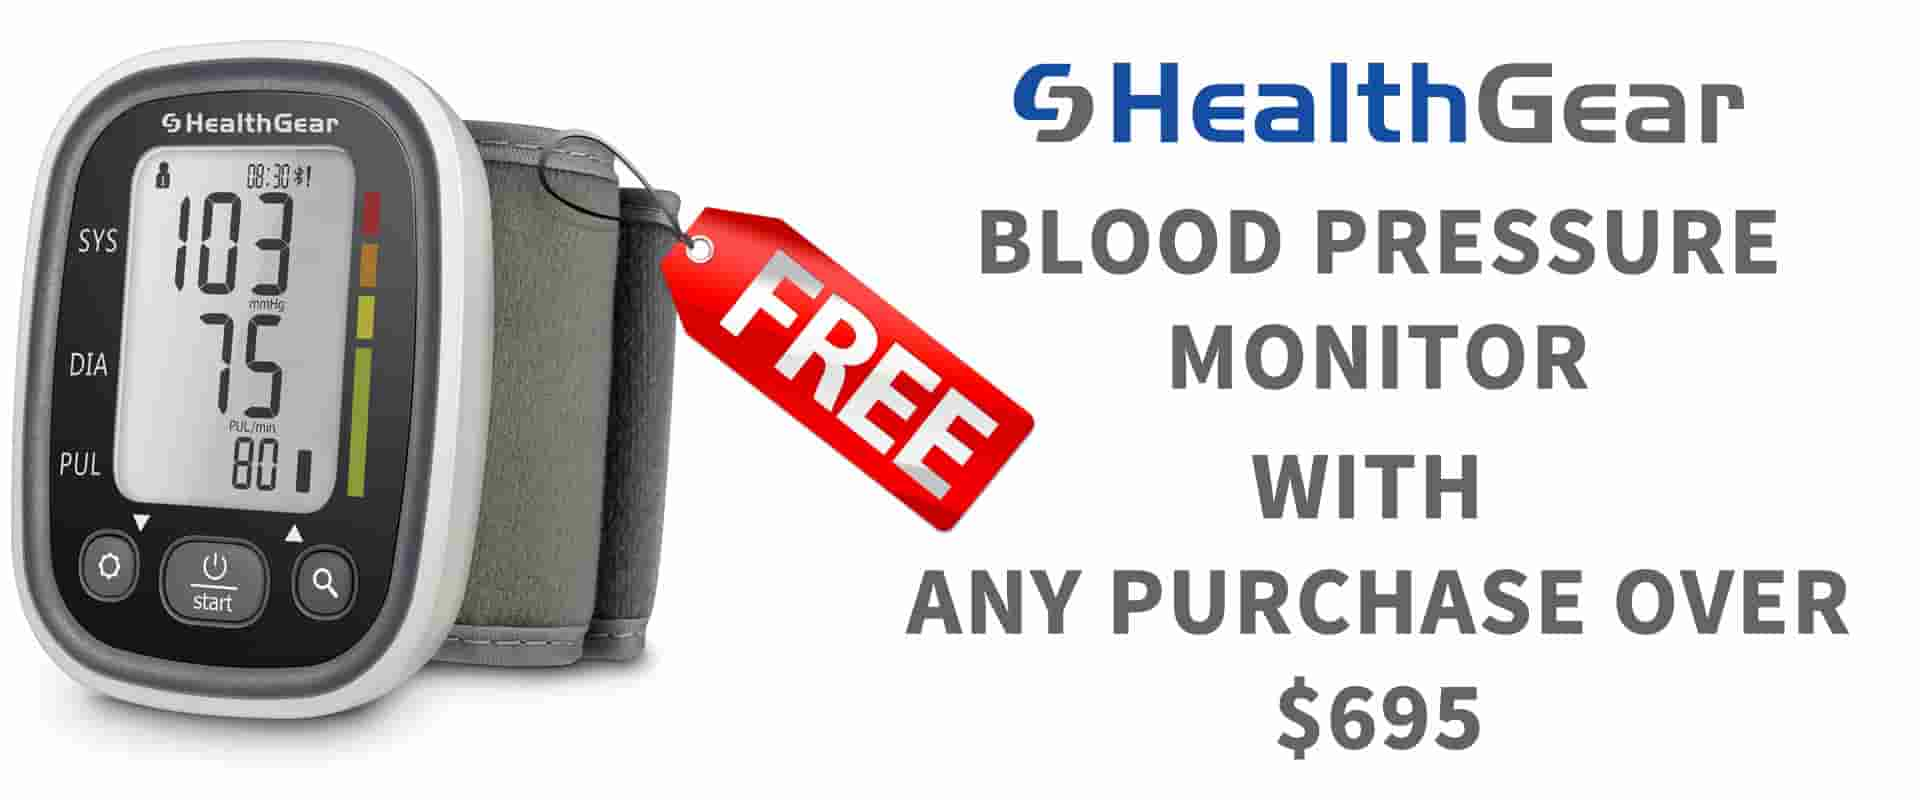 Free Blood Pressure Monitor with any purchase of $695 or more - while stocks last